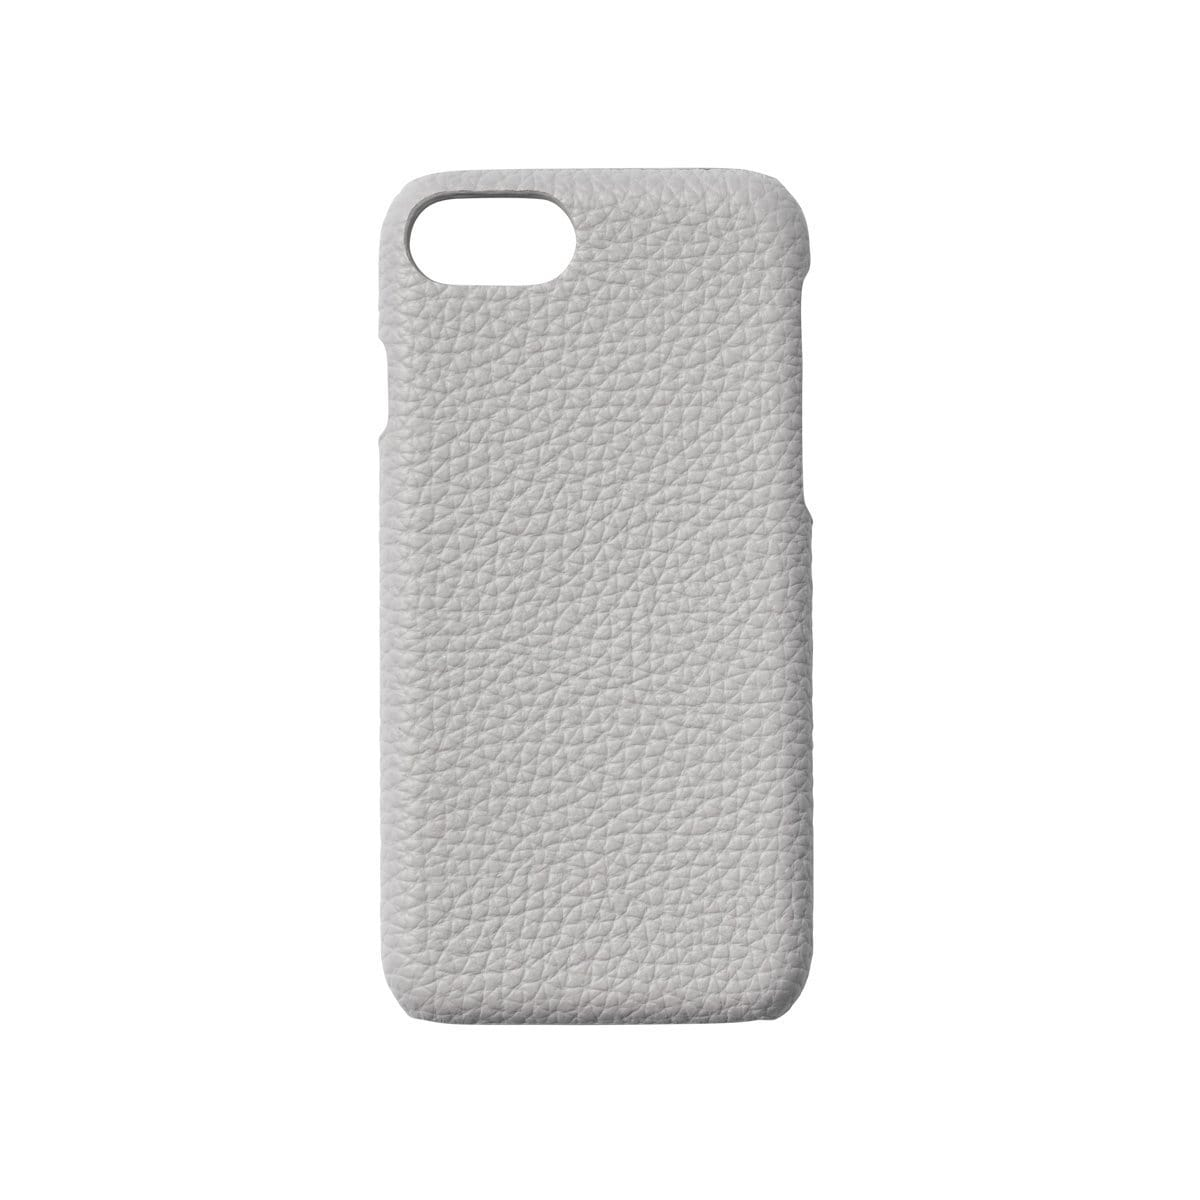 Parma Grey Phone Case (6/6S/7/8)